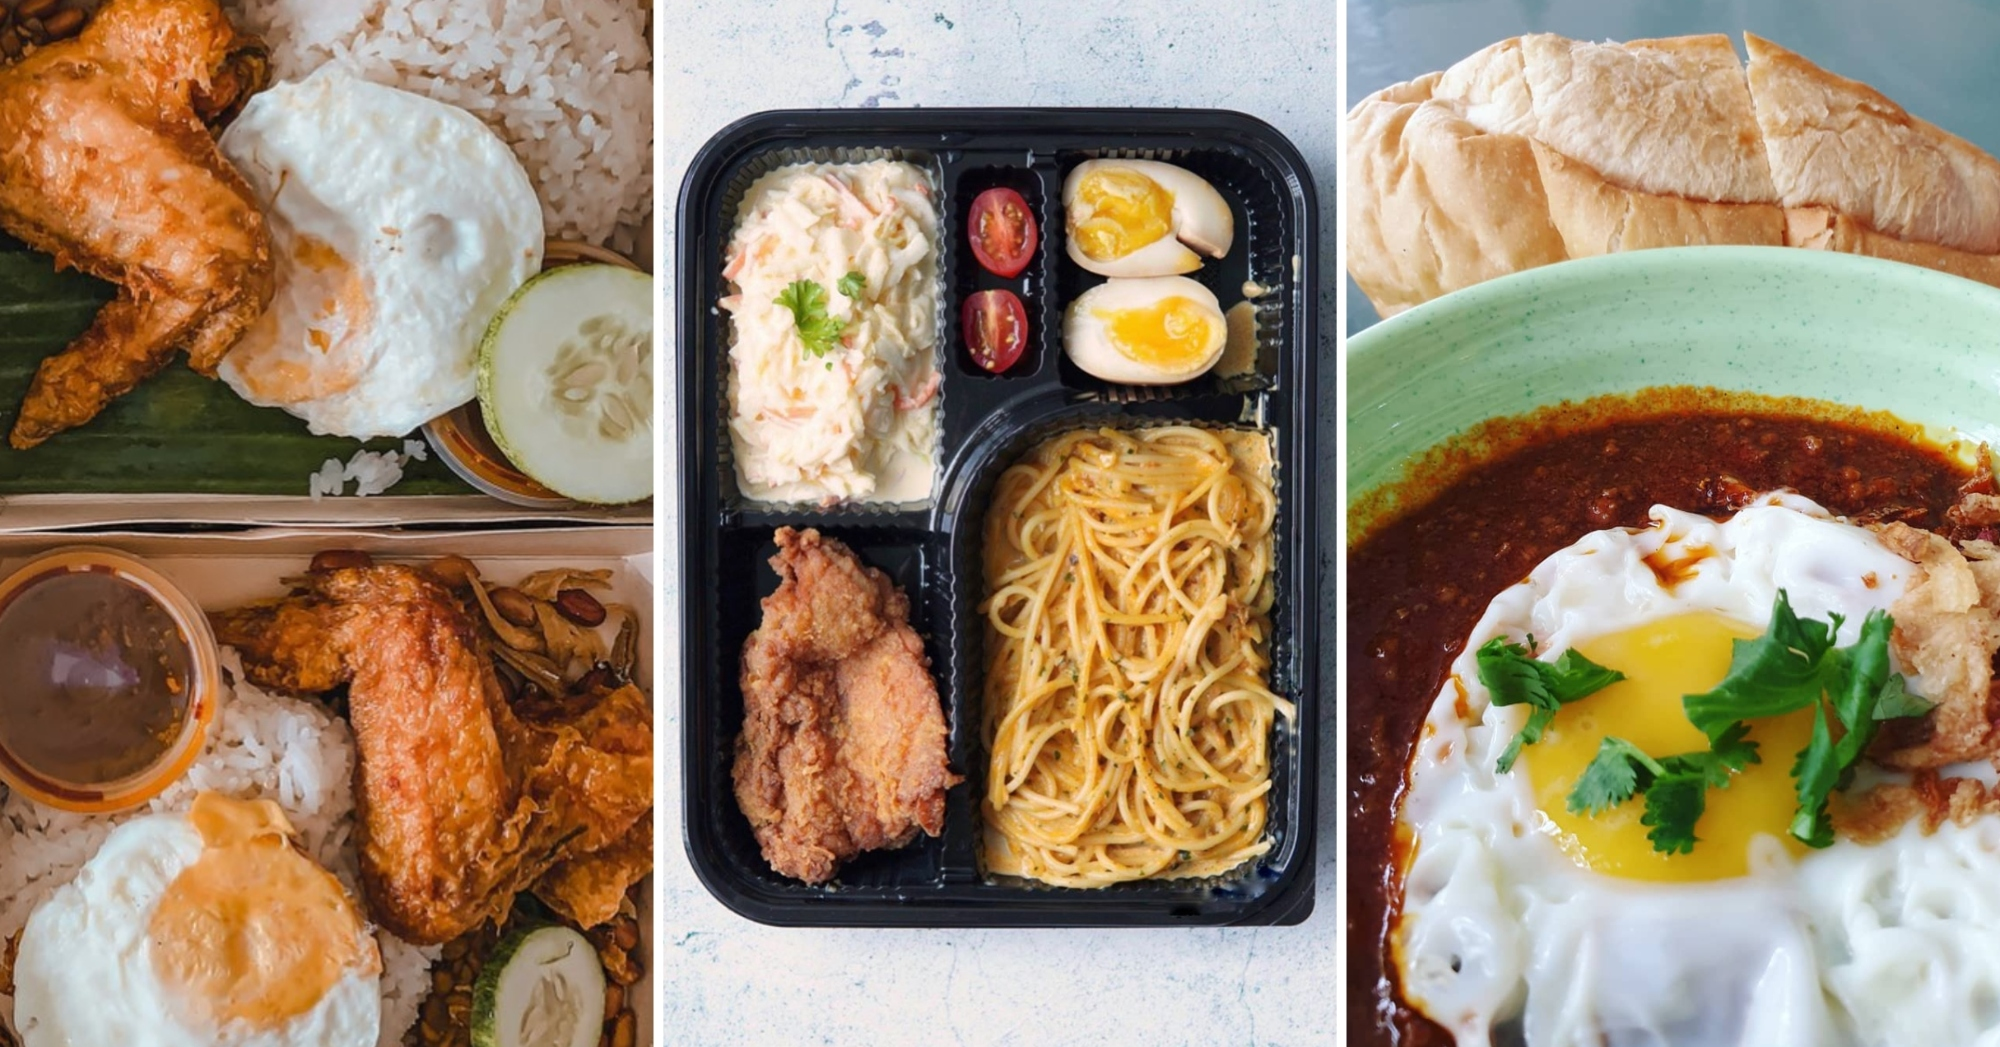 8 Tampines Halal Food Places Offering Takeaway Self Pick Up Services